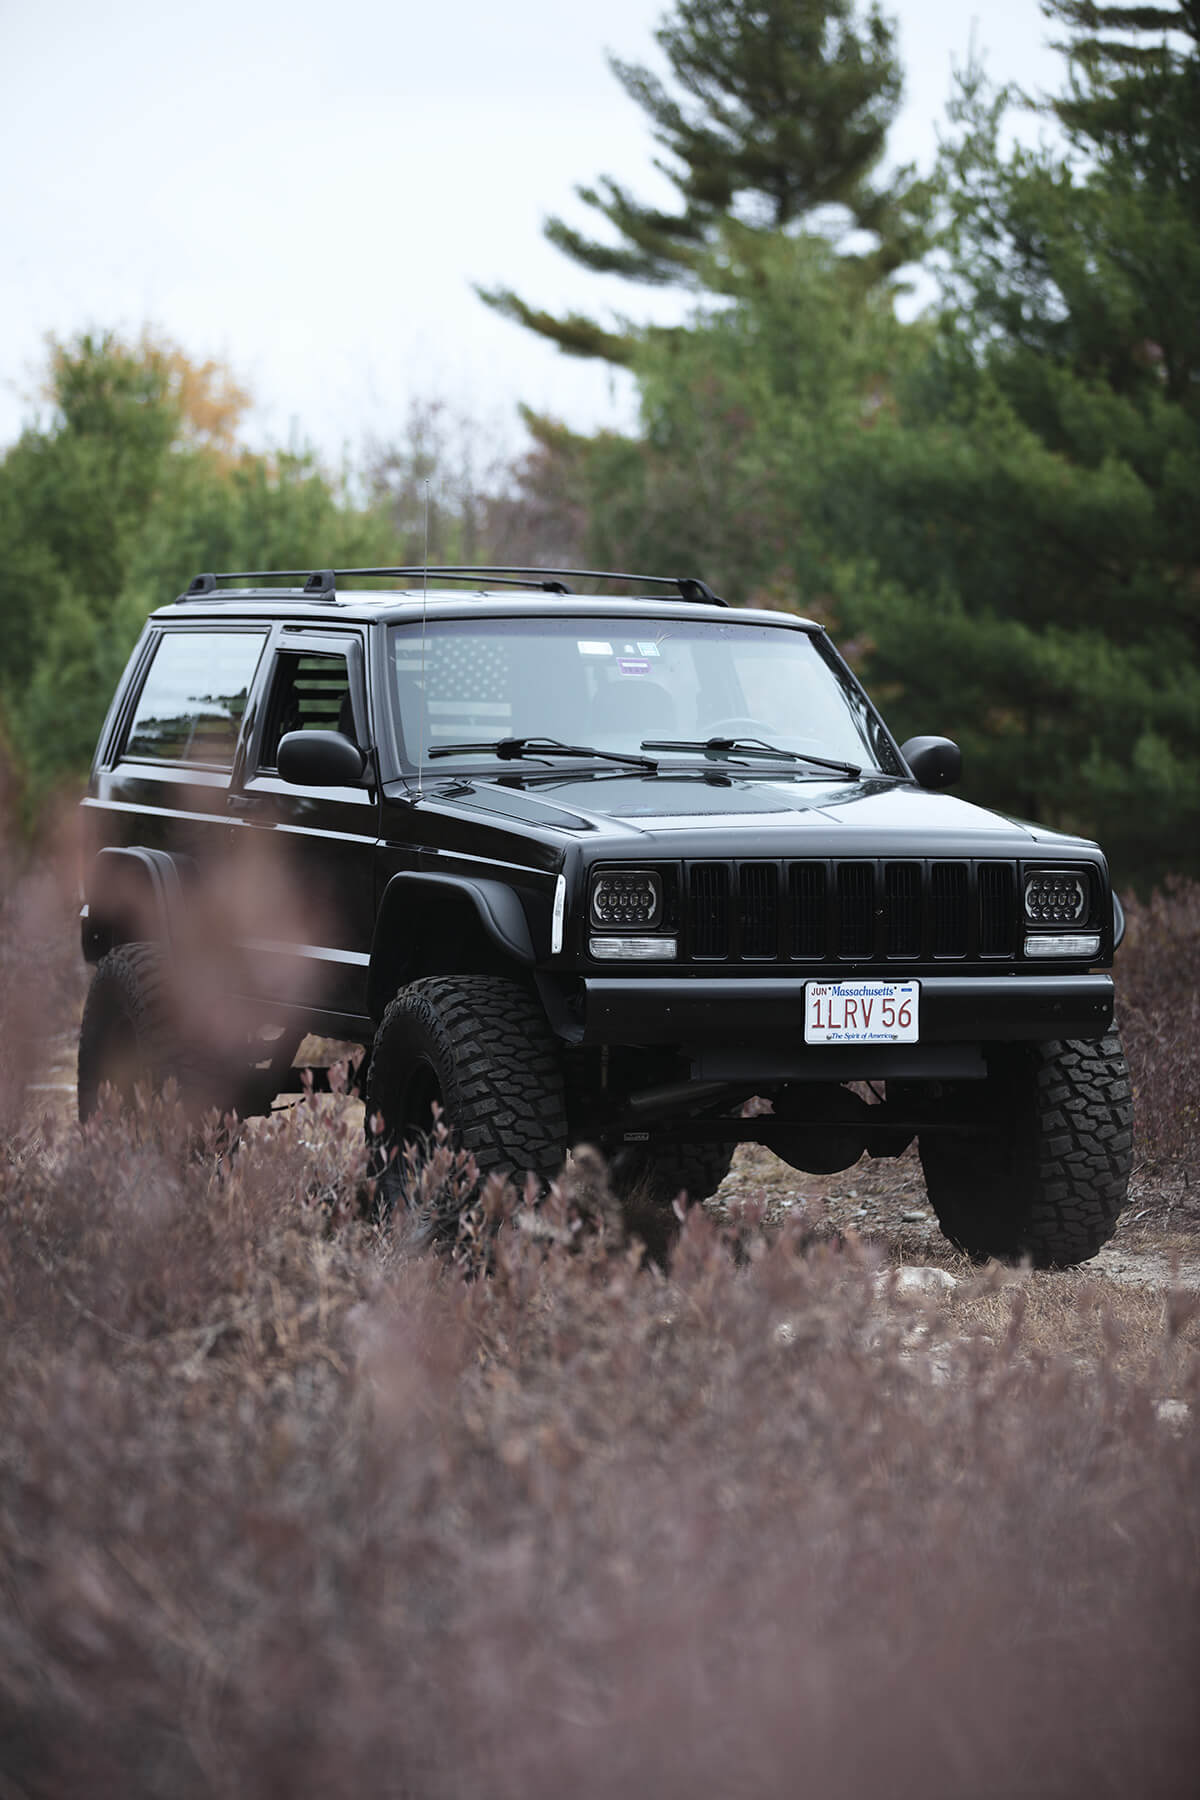 Lifted Jeep Cherokee XJ on 33x12.5 off-road tires